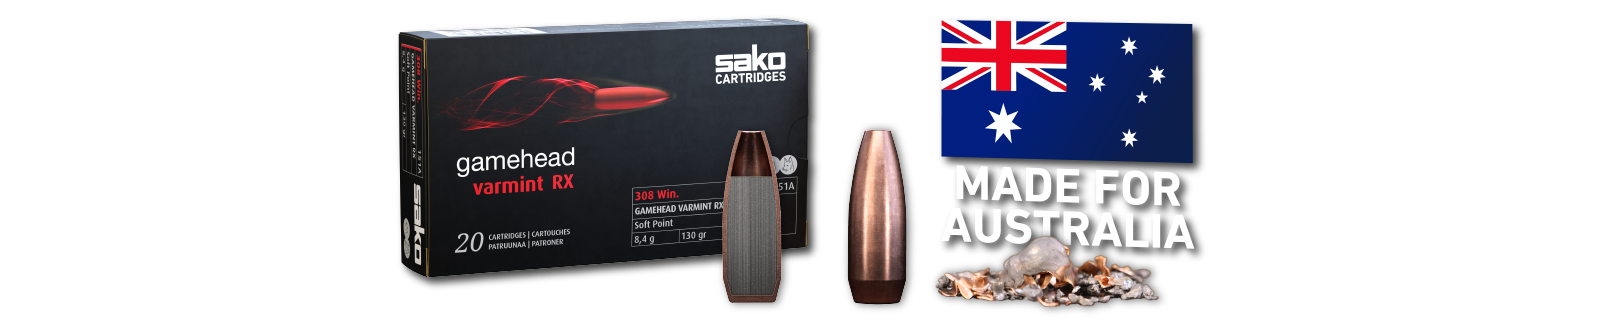 SAKO CARTRIDGES GAMEHEAD VARMINT RX